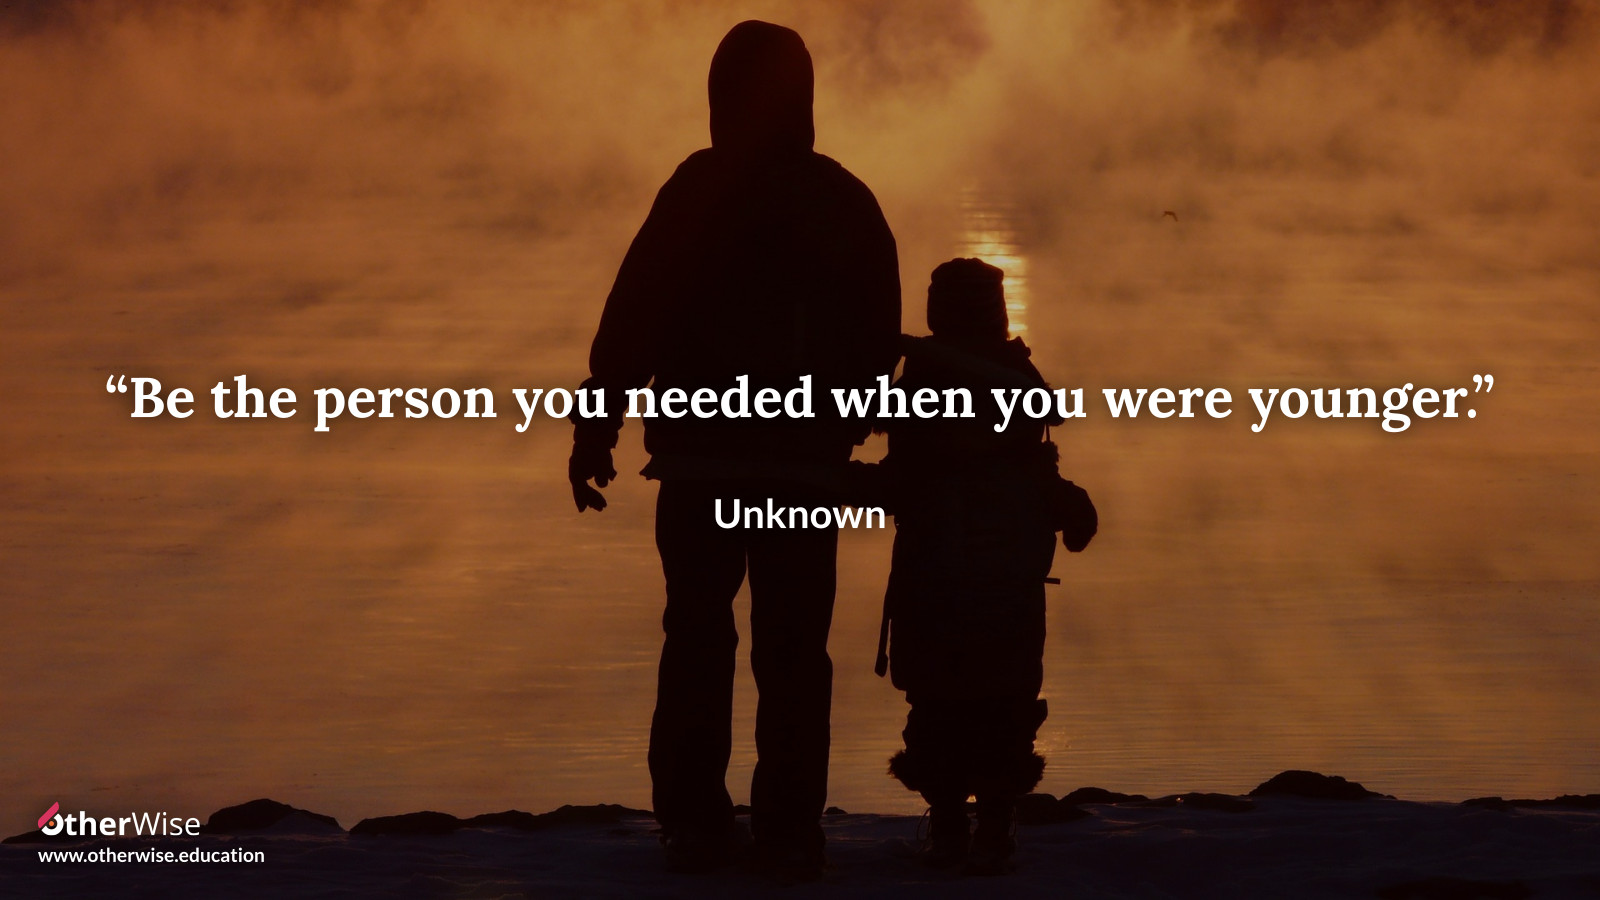 quote - be the person you needed when you were younger